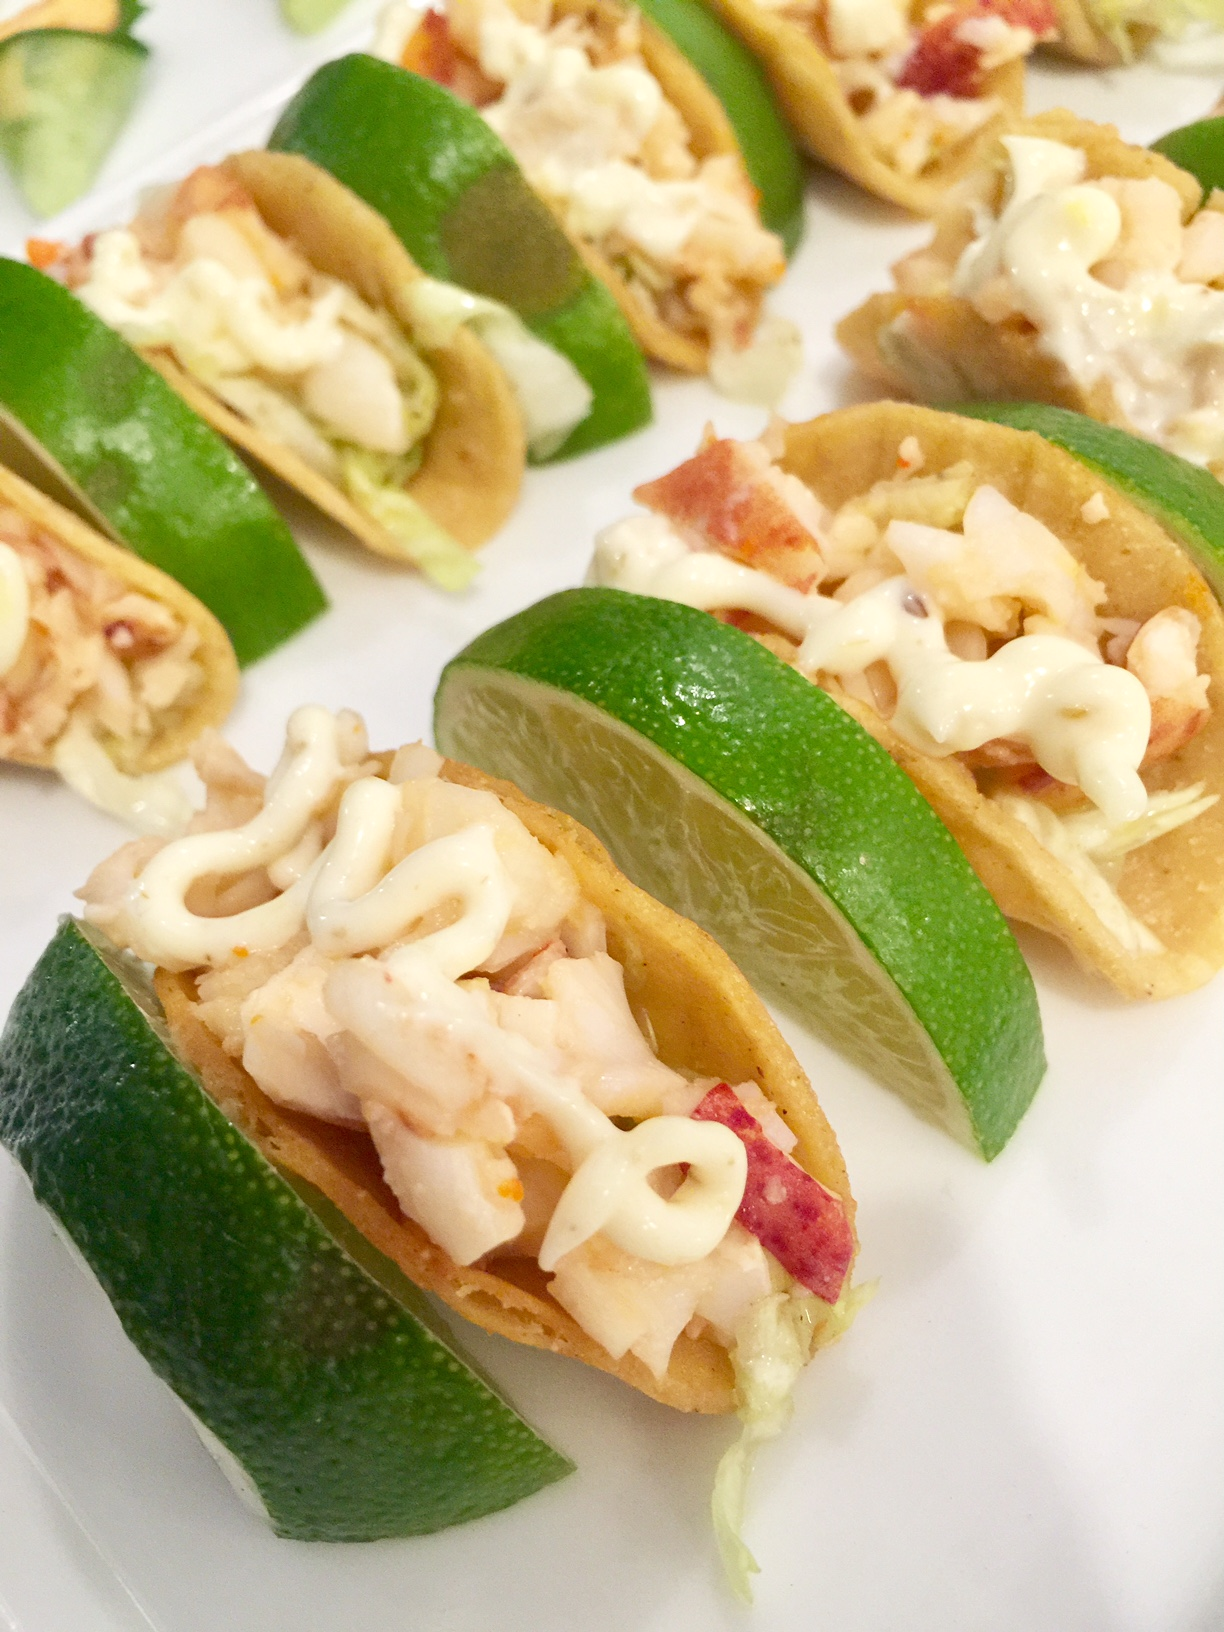 Mini Lobster Salad Tacos topped with a Lime Creme Fraiche